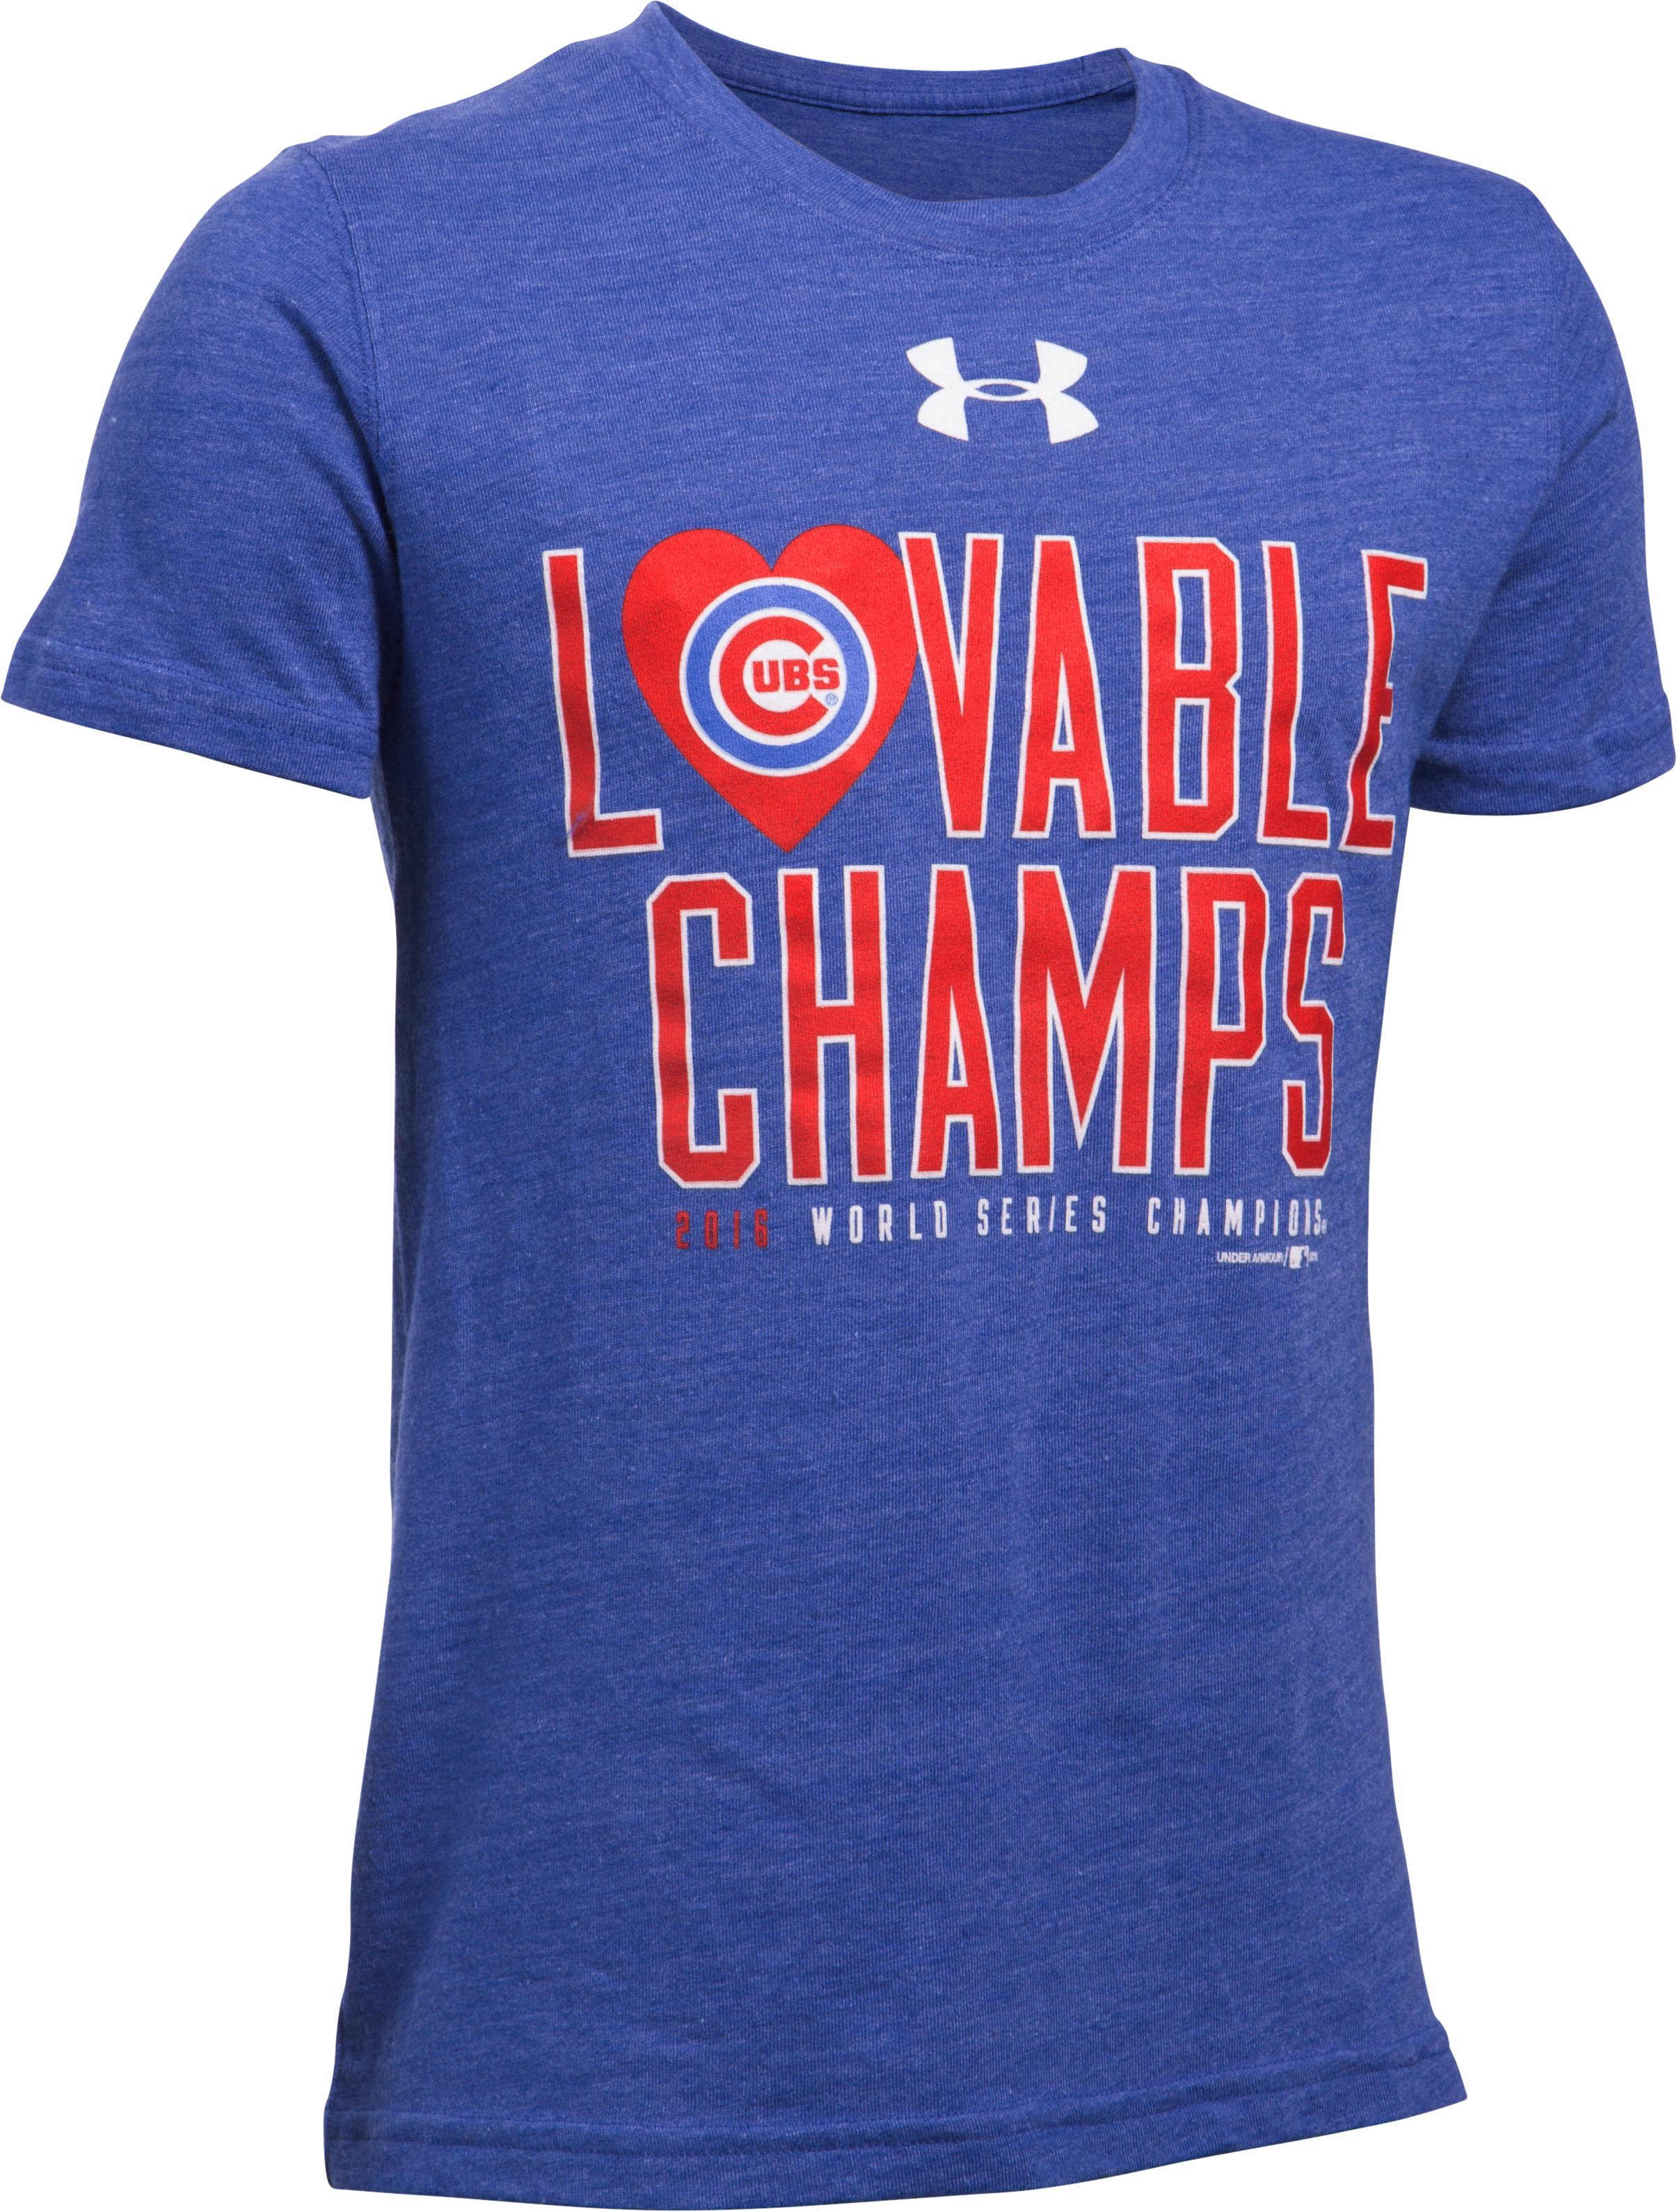 Kids' Chicago Cubs Lovable Champ T-Shirt, Royal, undefined